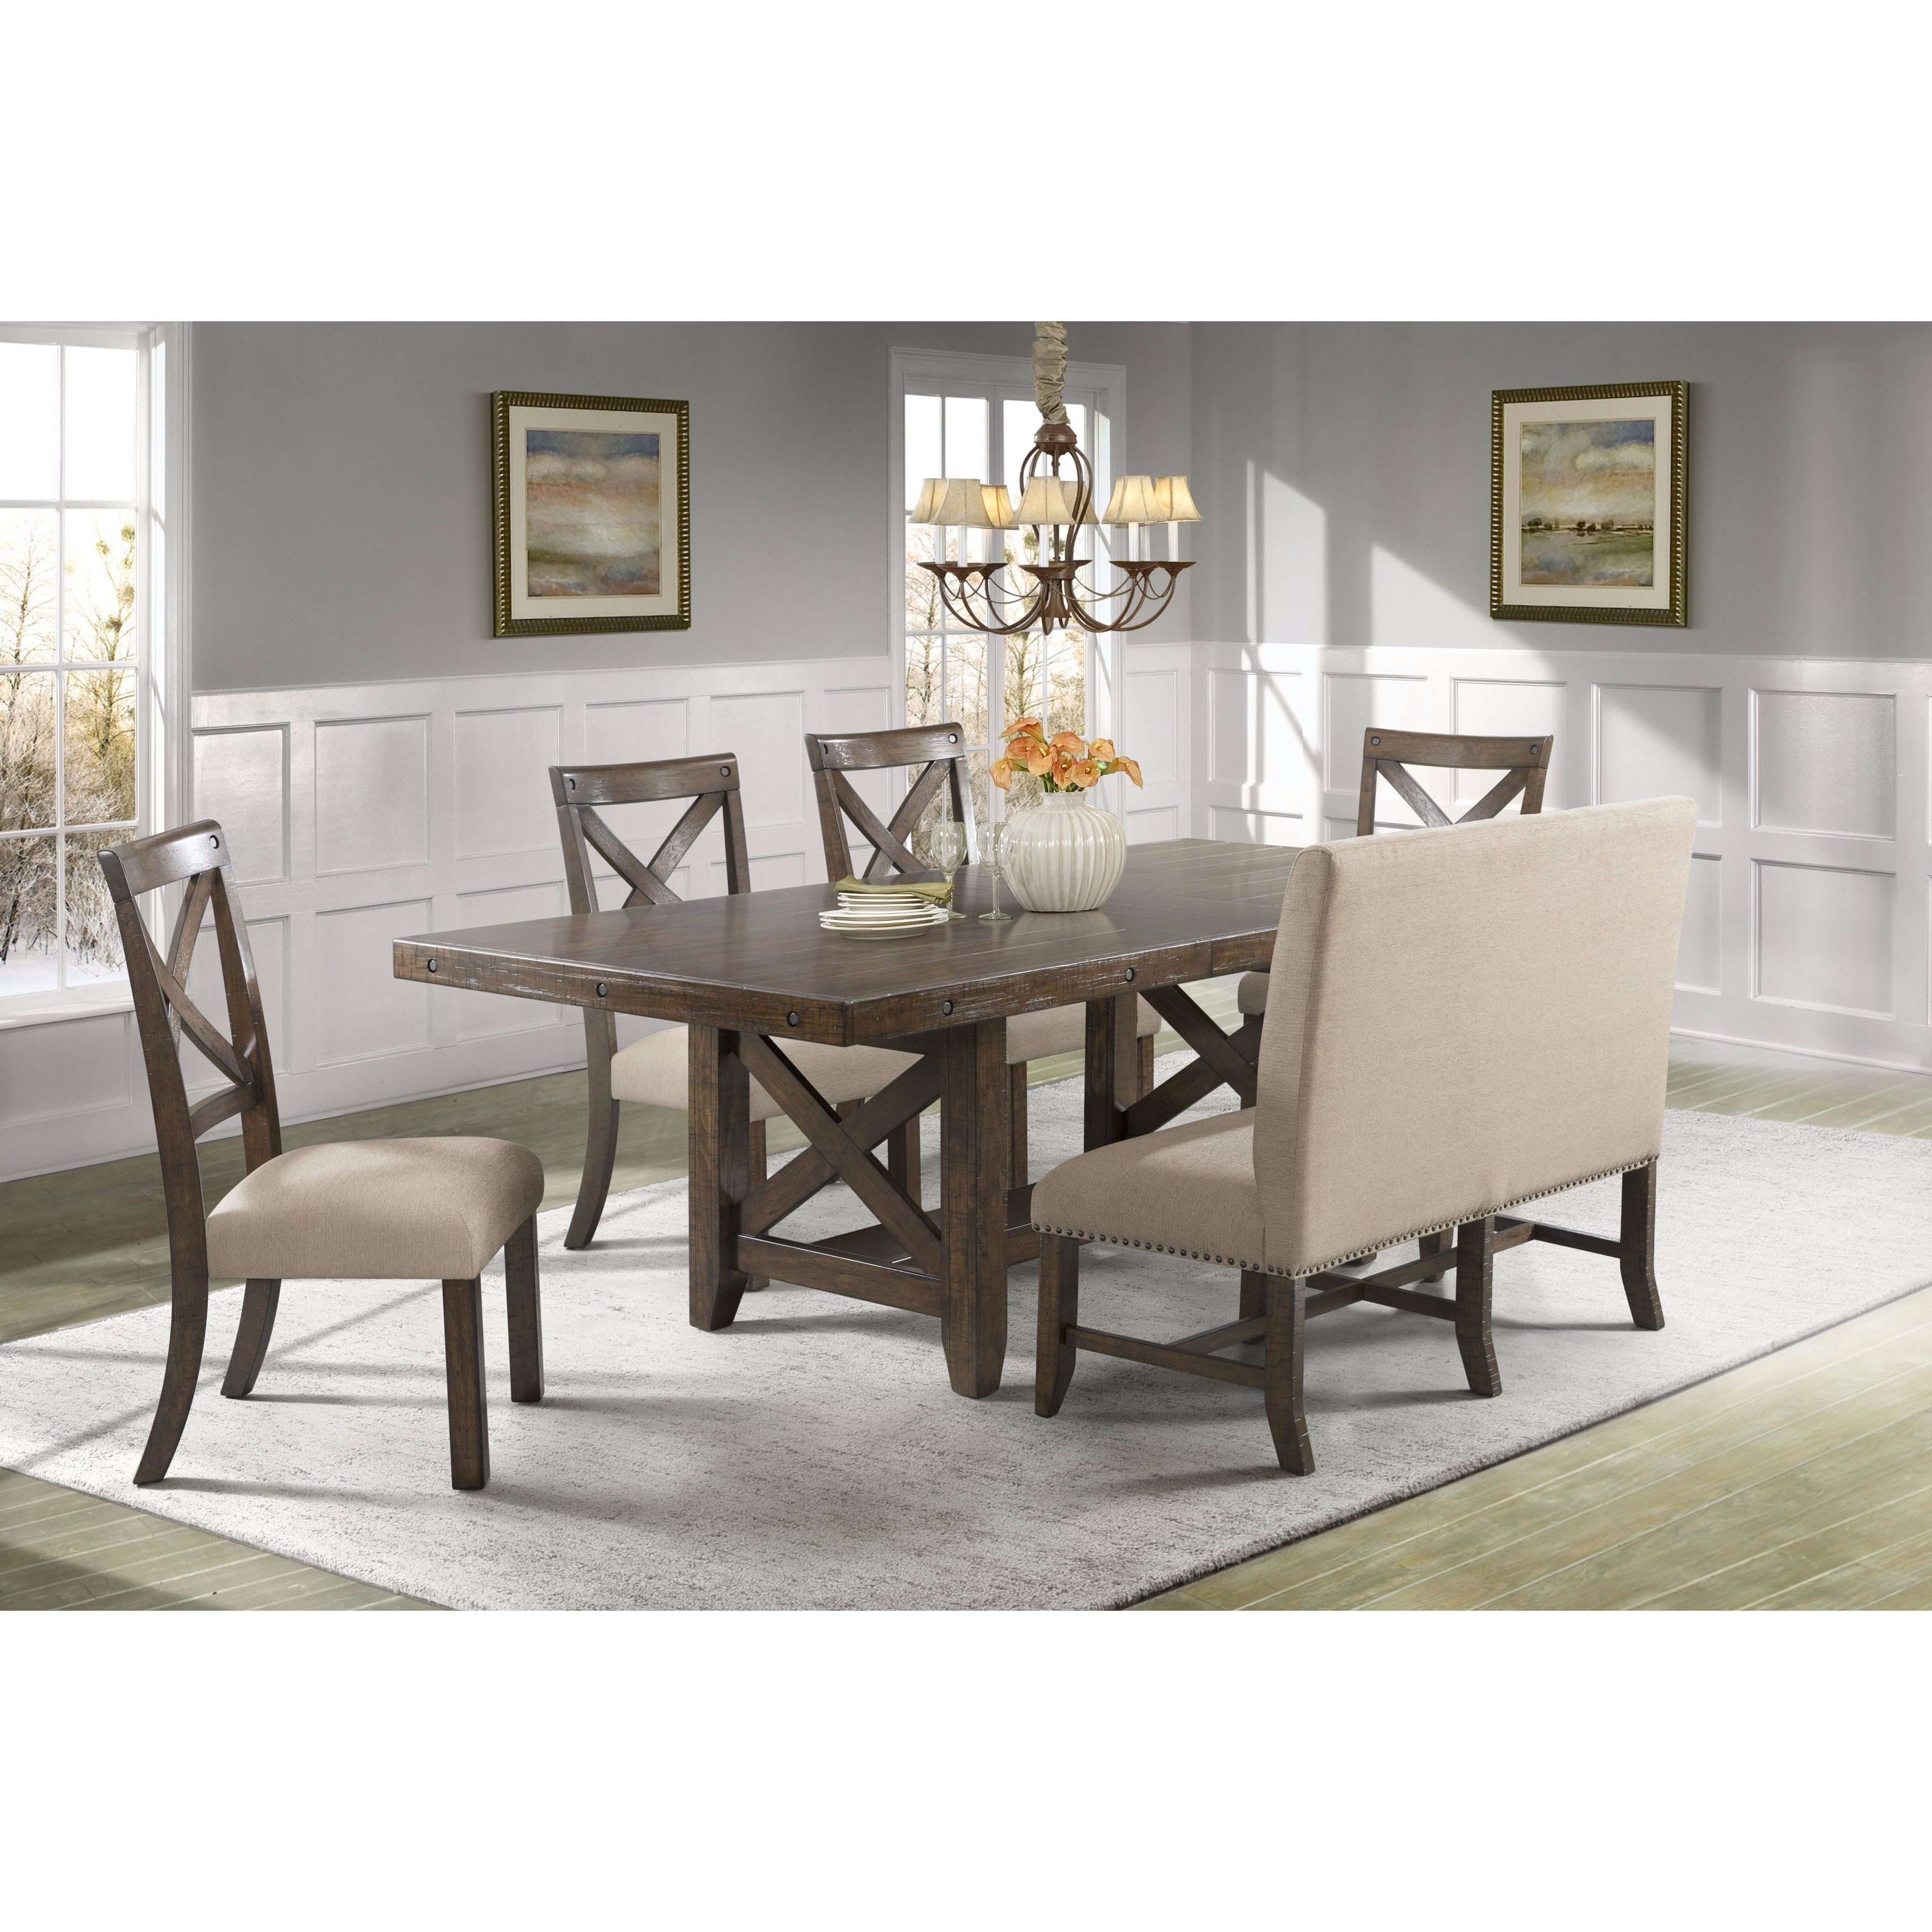 Popular Bench With Back For Dining Tables Within Shop Picket House Furnishings Francis 6Pc Dining Set Table, 4 X Back (View 12 of 25)